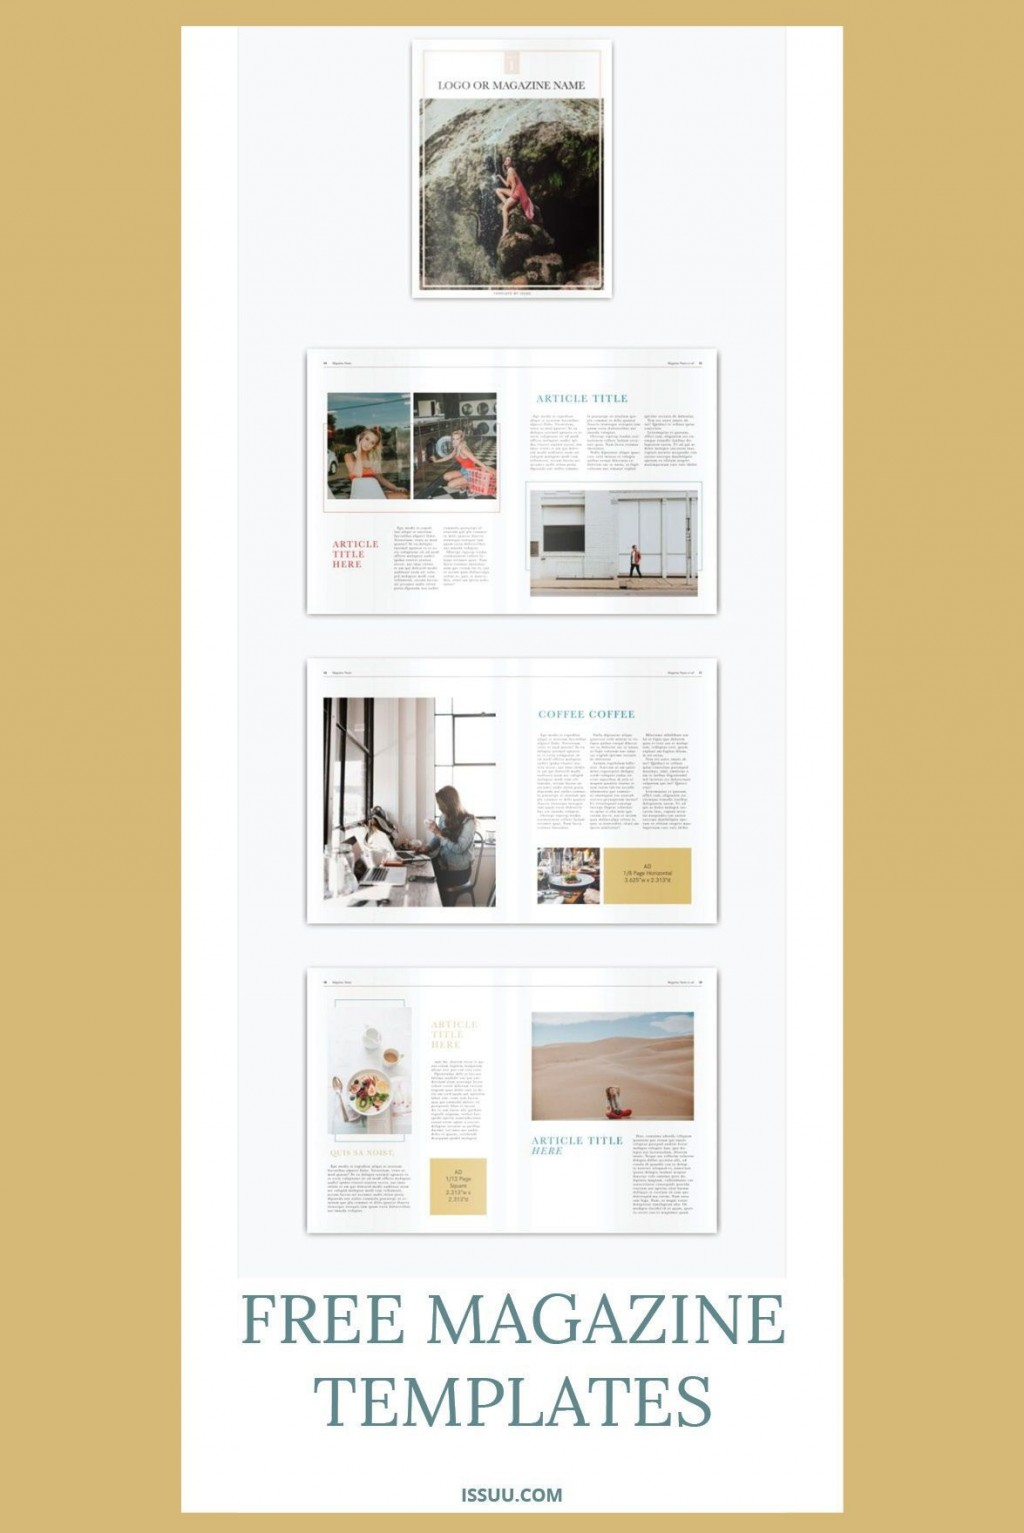 001 Breathtaking Free Magazine Layout Template Design  Templates For Word Microsoft PowerpointLarge